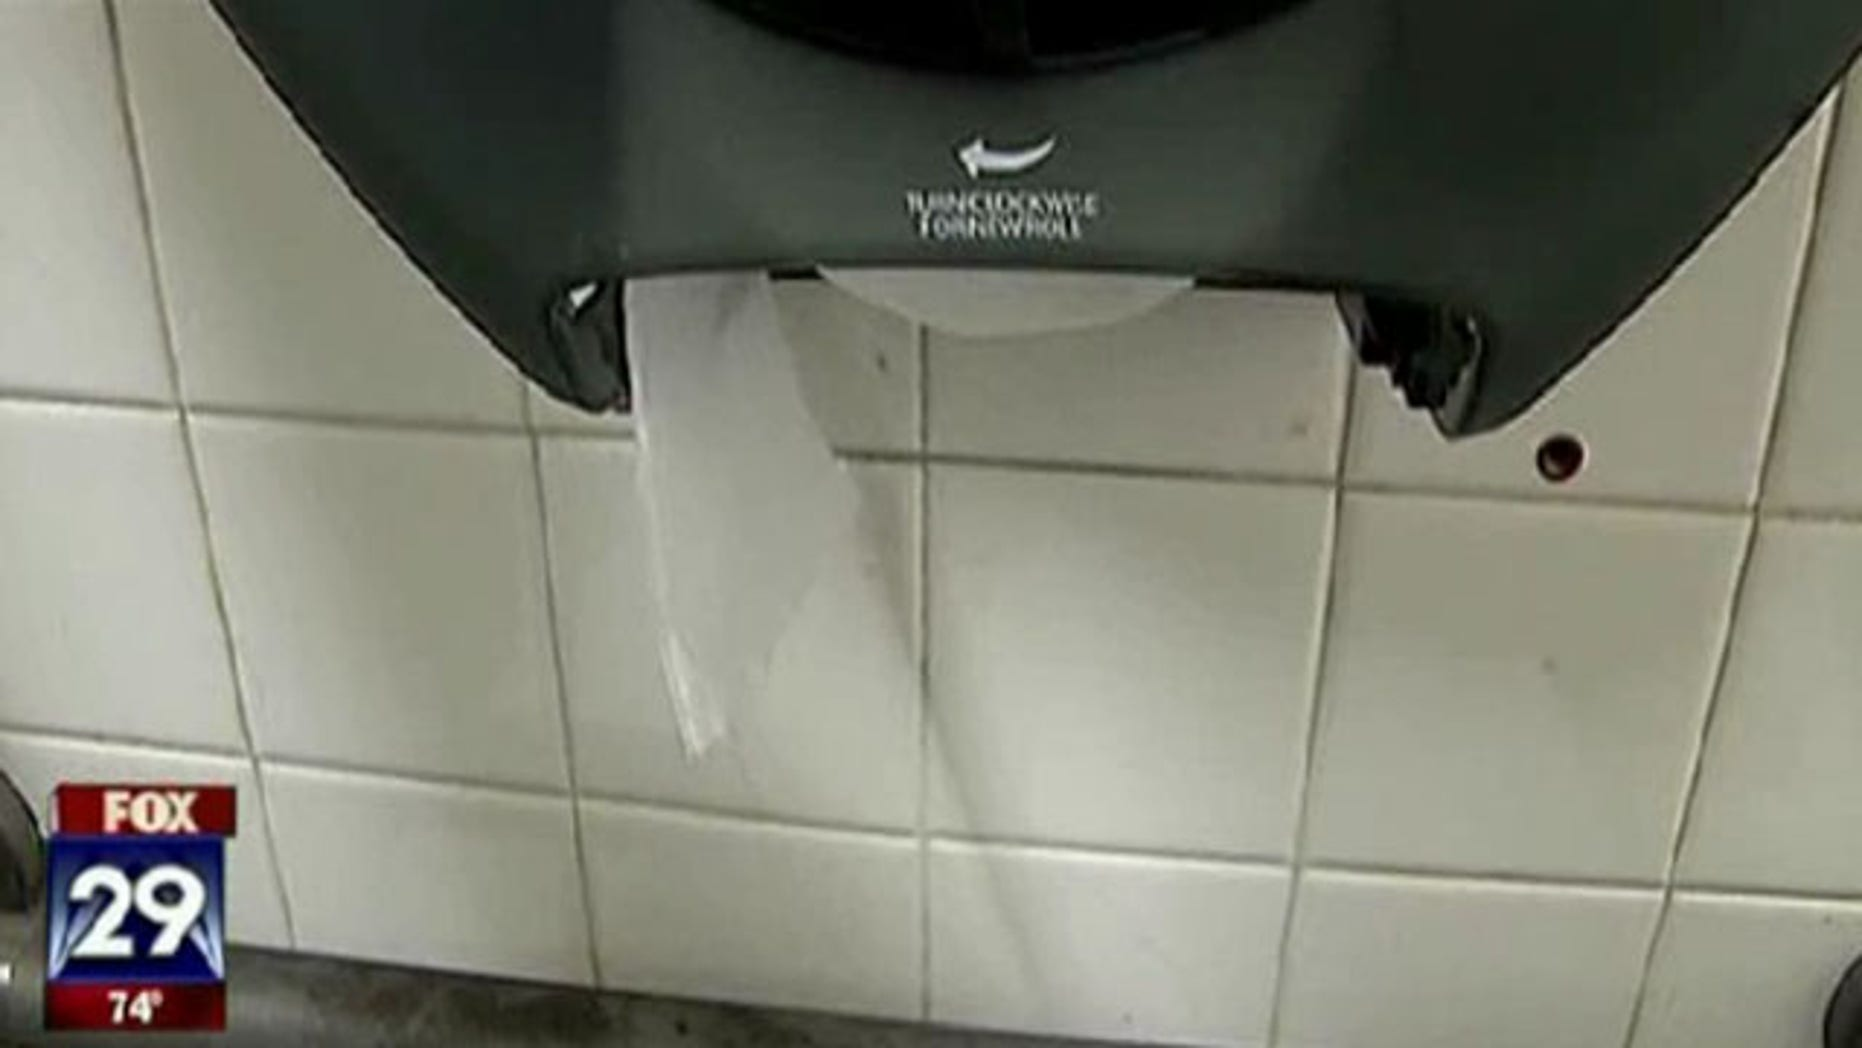 Shown here is a Trenton city bathroom stall.